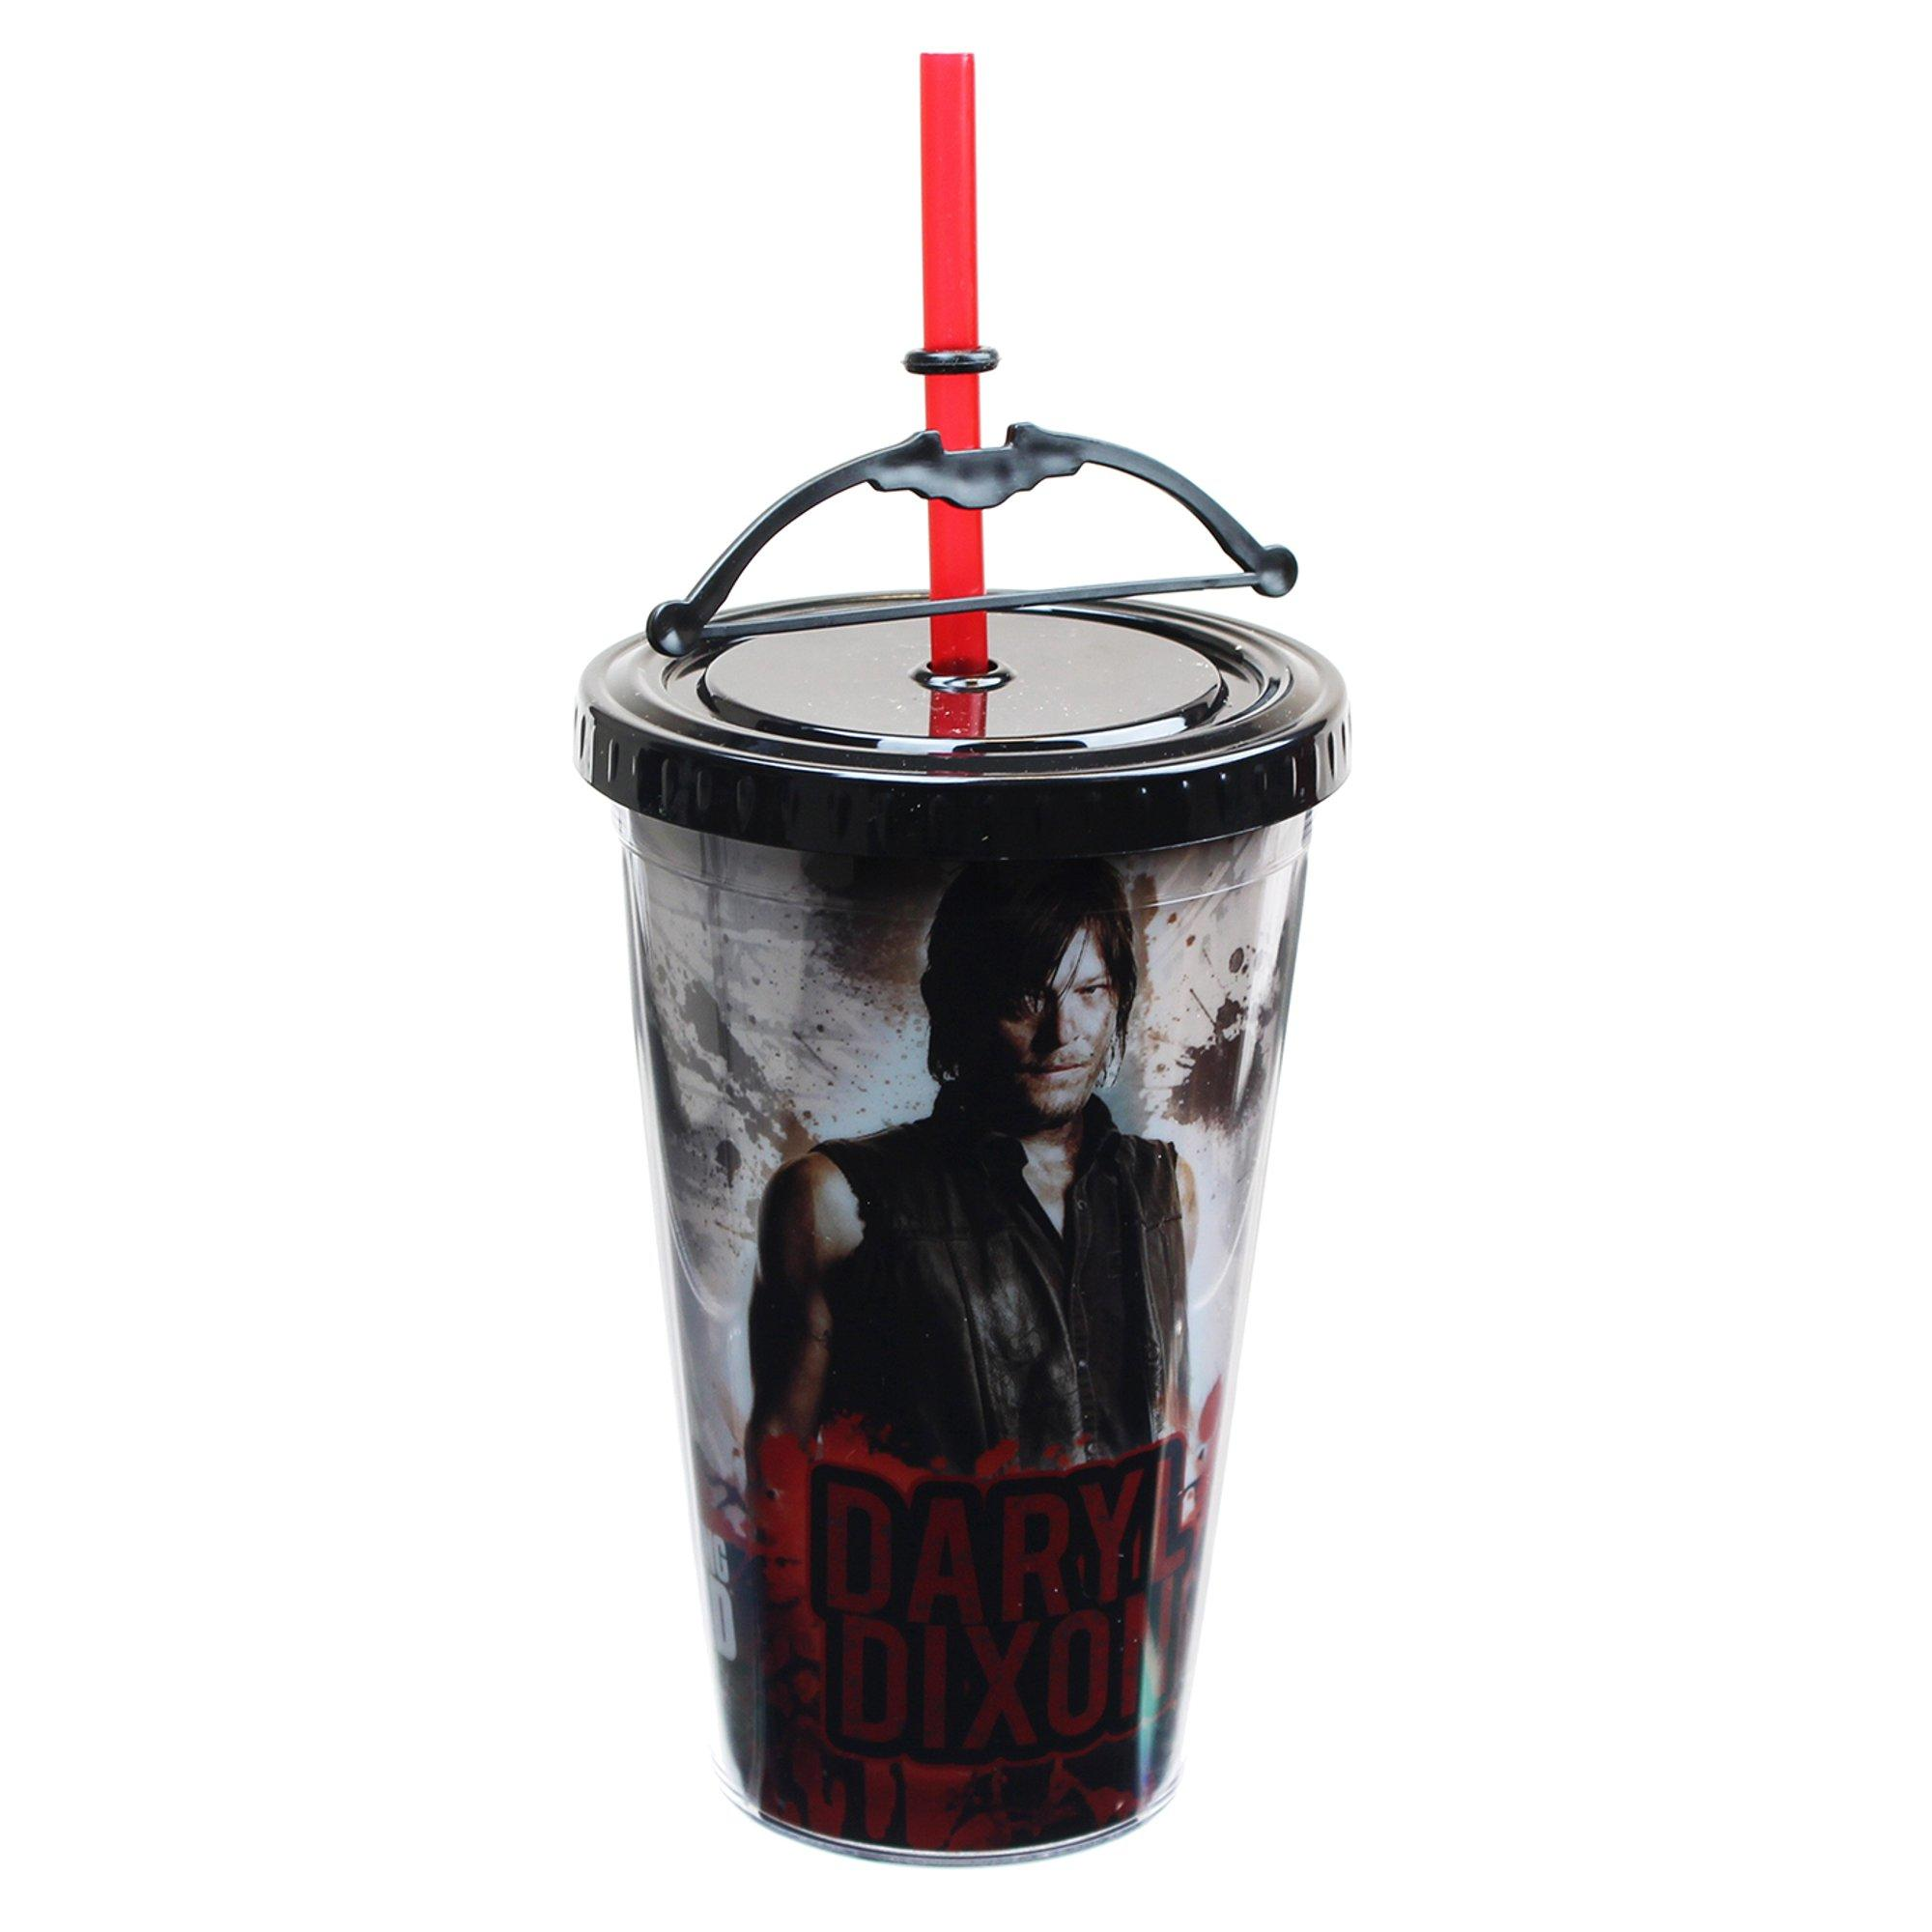 Walking Dead Daryl Crossbow Carnival Cup